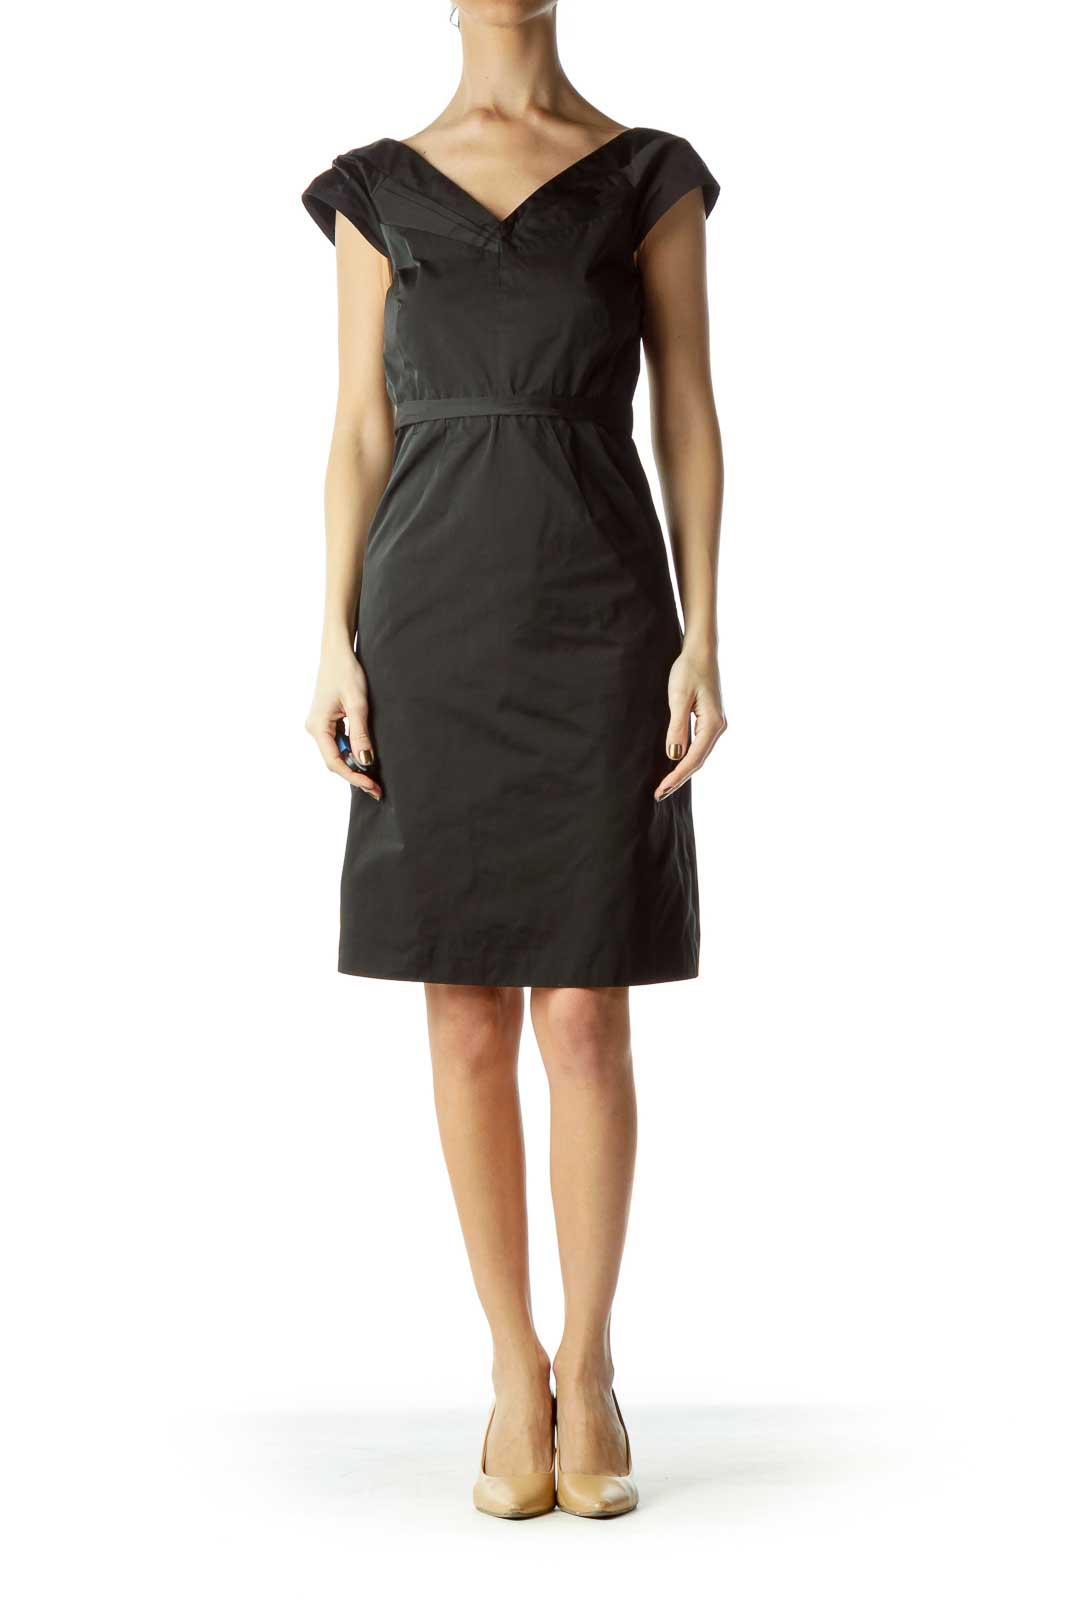 Black A-line Sleeveless Dress